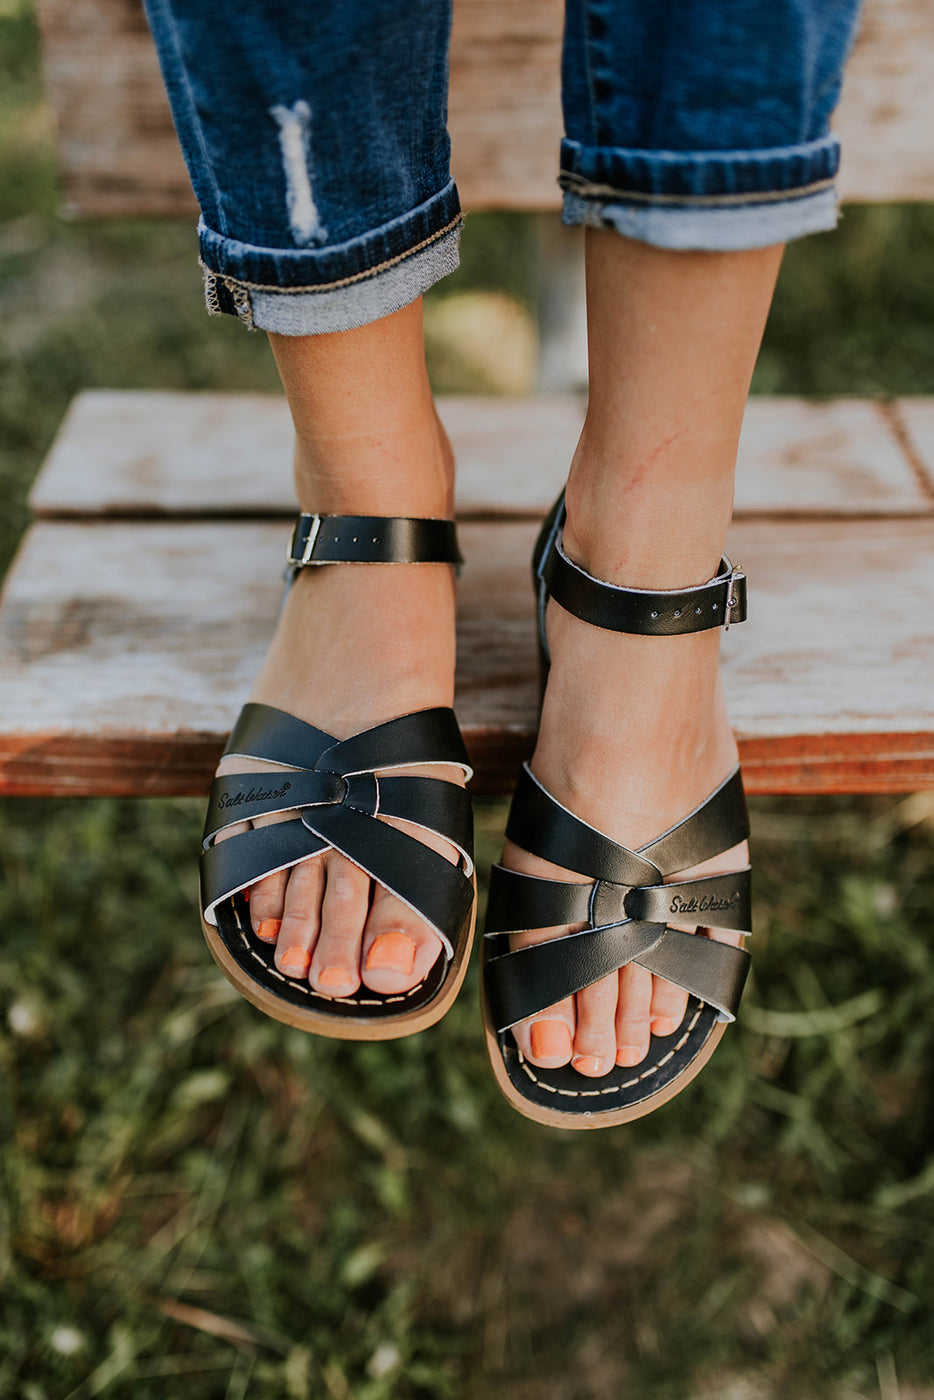 e8f05d88d36f Summer Sandals - Leather Strap Sandals